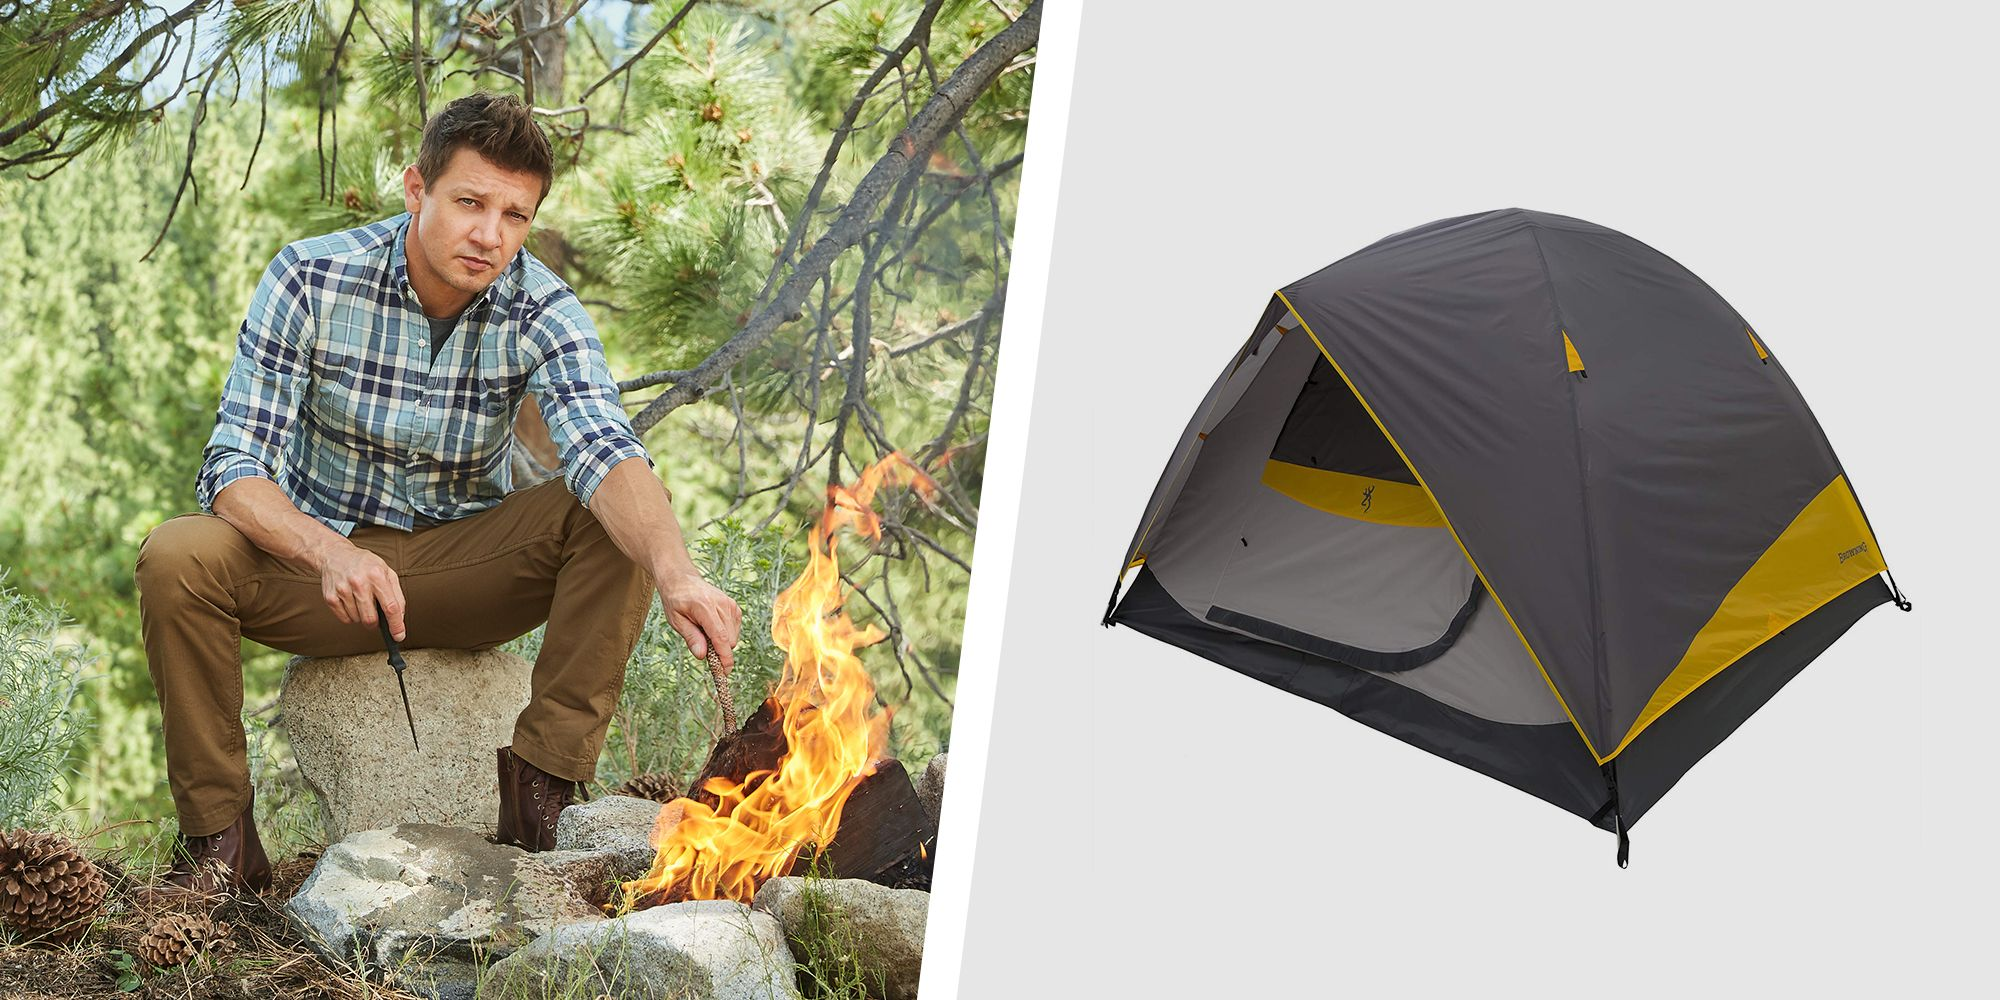 Jeremy Renner Shares His 10 Favorite Outdoor Essentials You Can Buy on Amazon